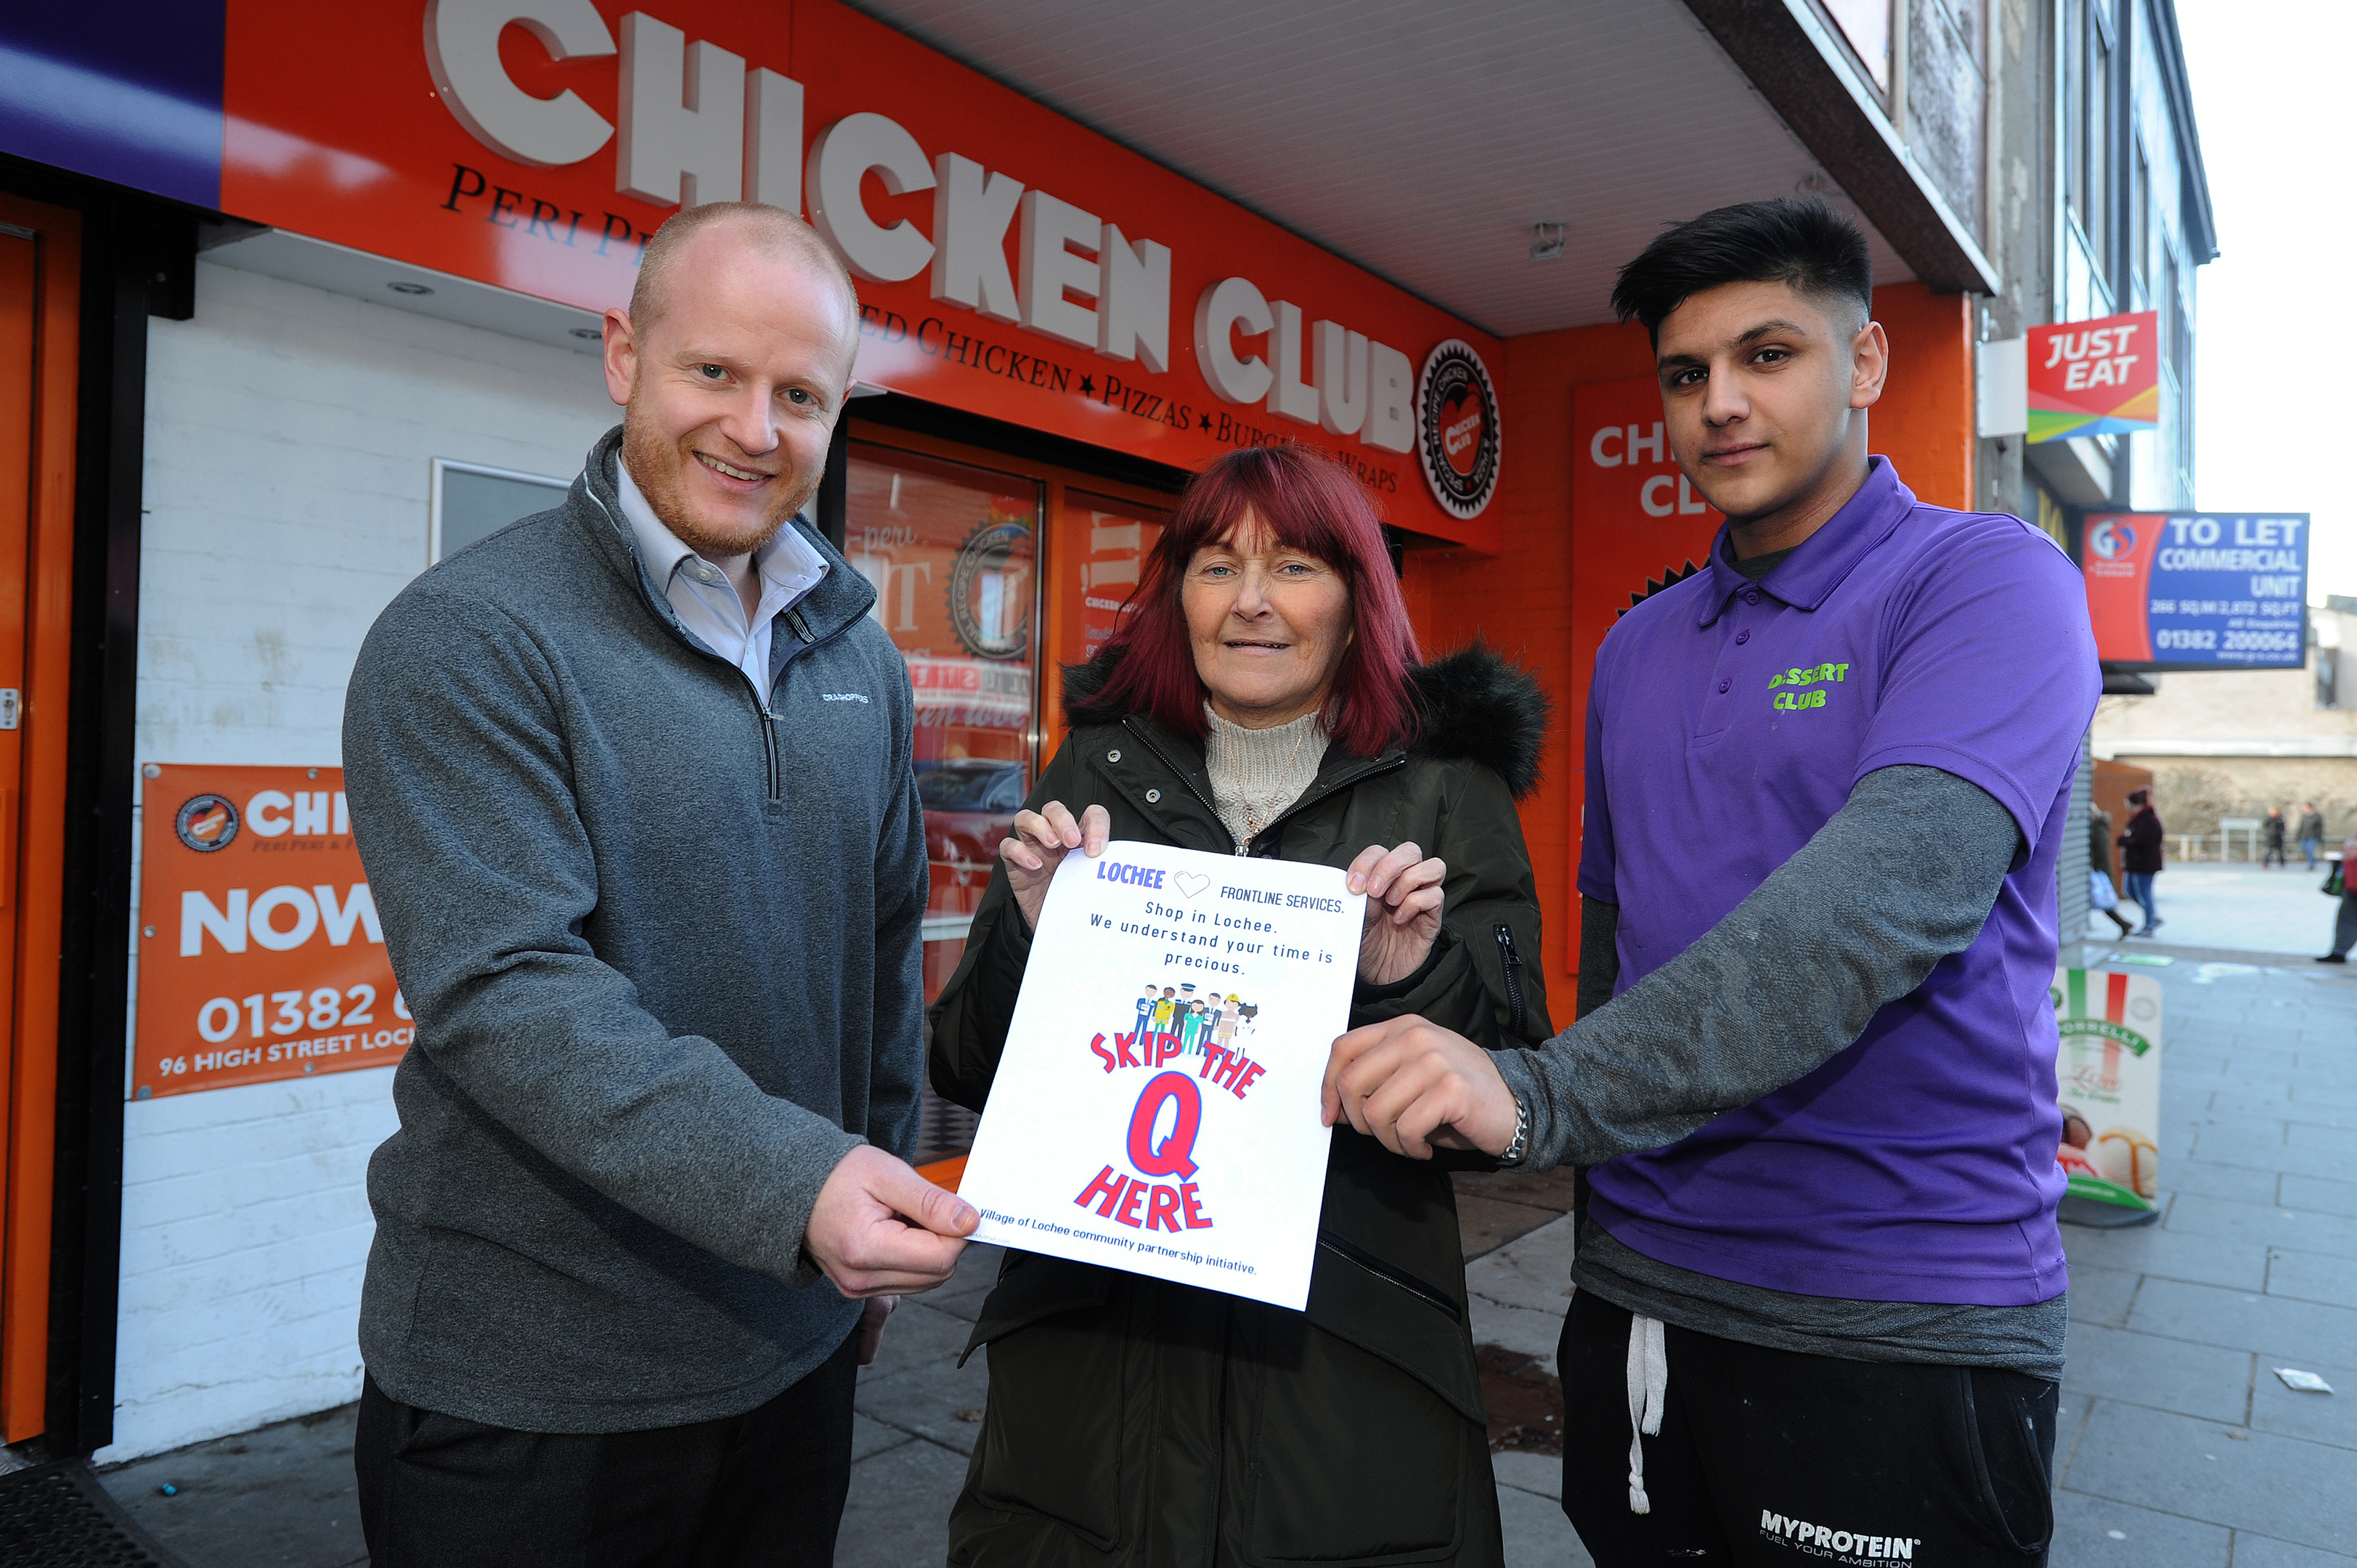 Council communities worker Lee Haxton, Janette Whitton of VOLCP and Usman Nasim of Chicken Club with the poster.